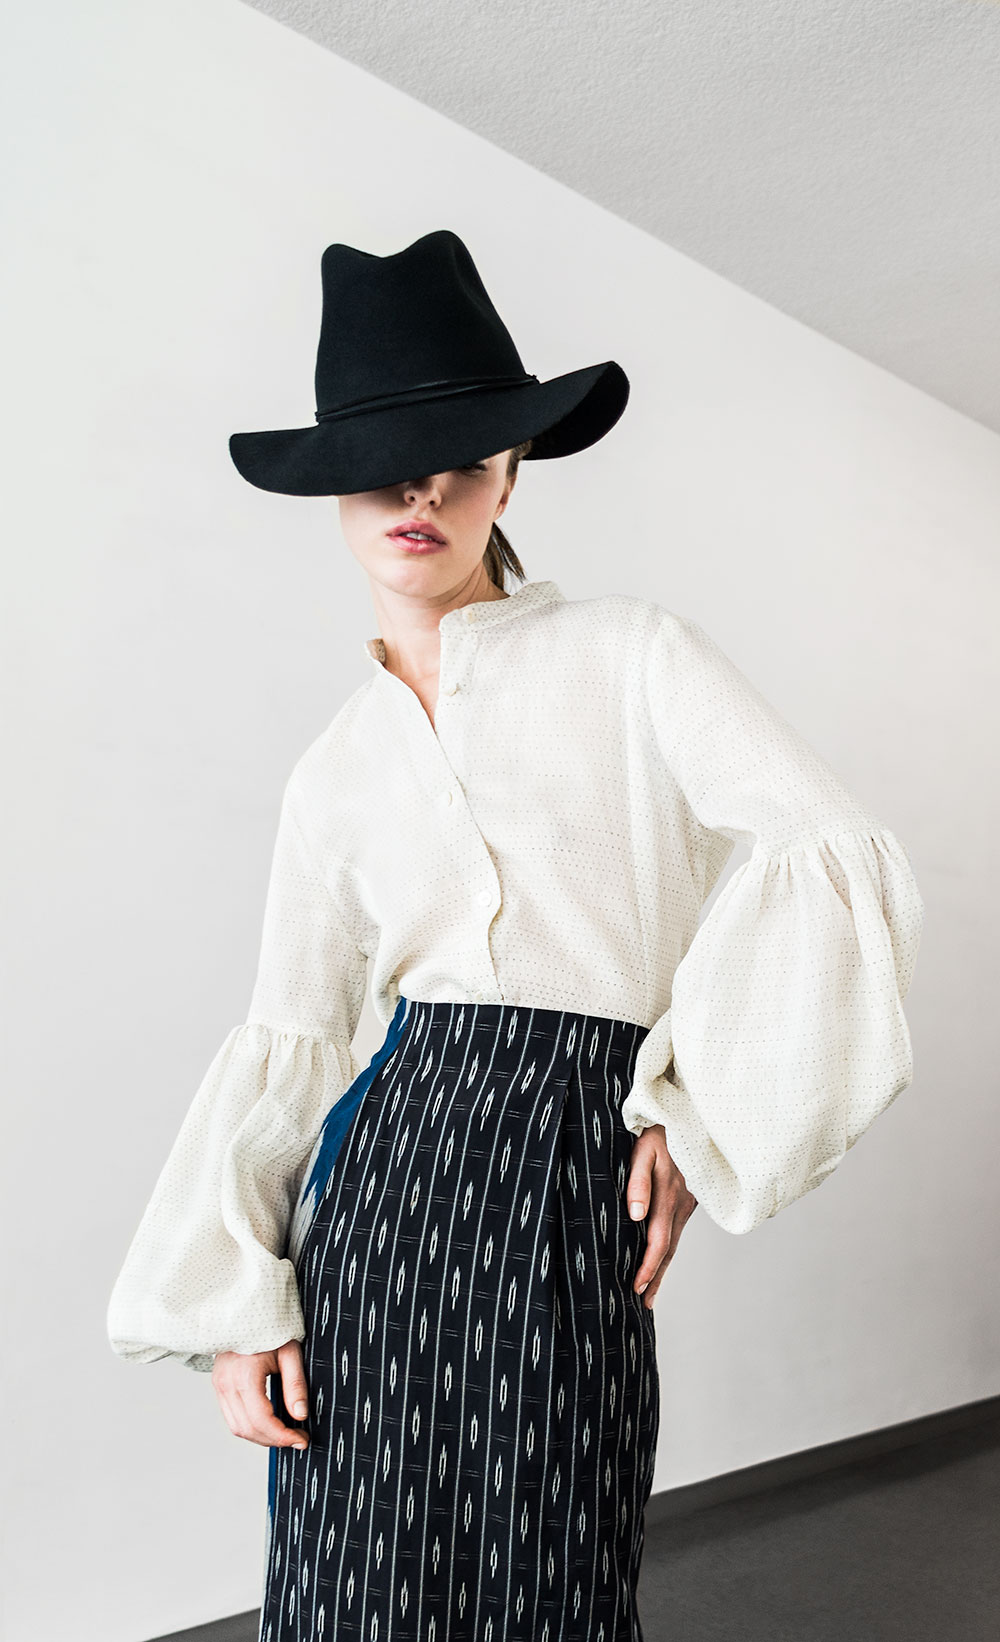 Pouf Sleeve Shirt in vintage Japanese linen ikat; Skinny Skirt in vintage Japanese silk ikat.